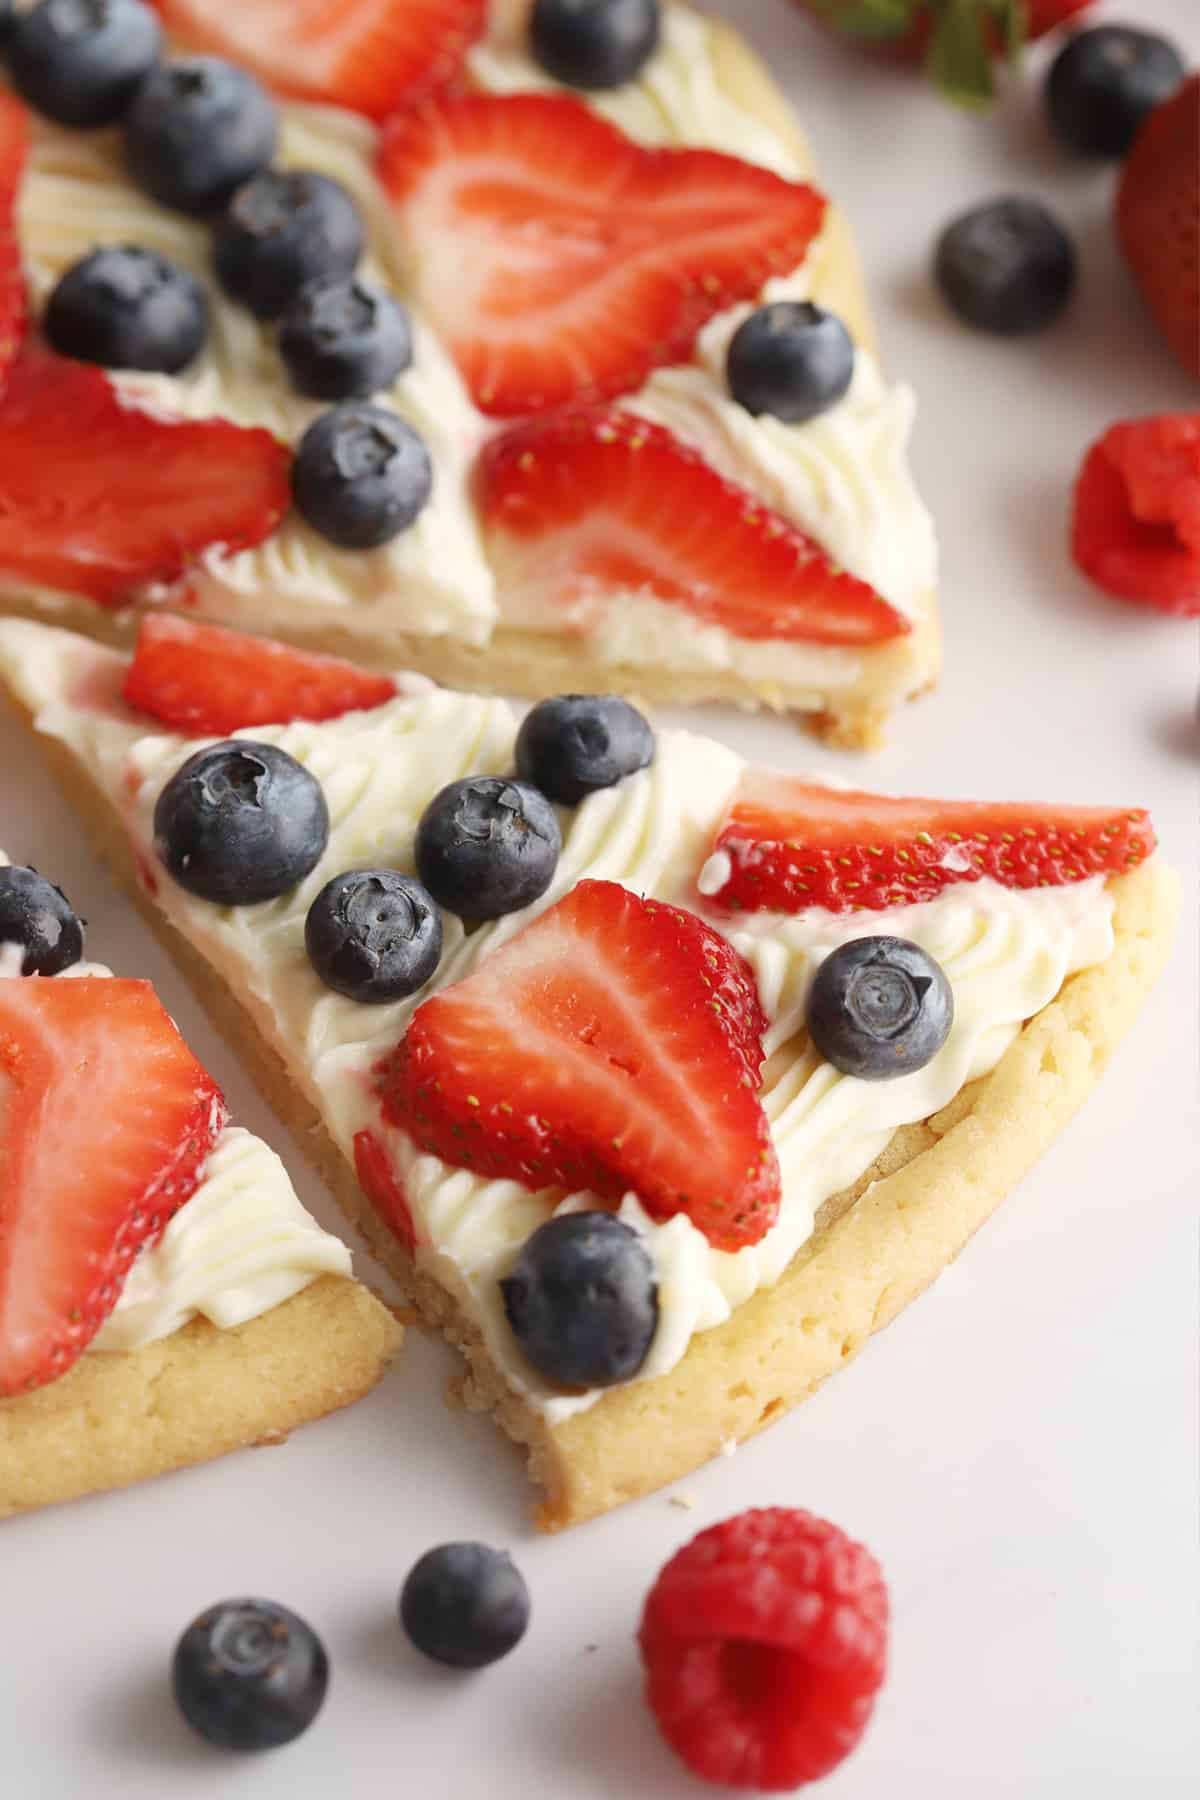 a wedge of fruit pizza cut